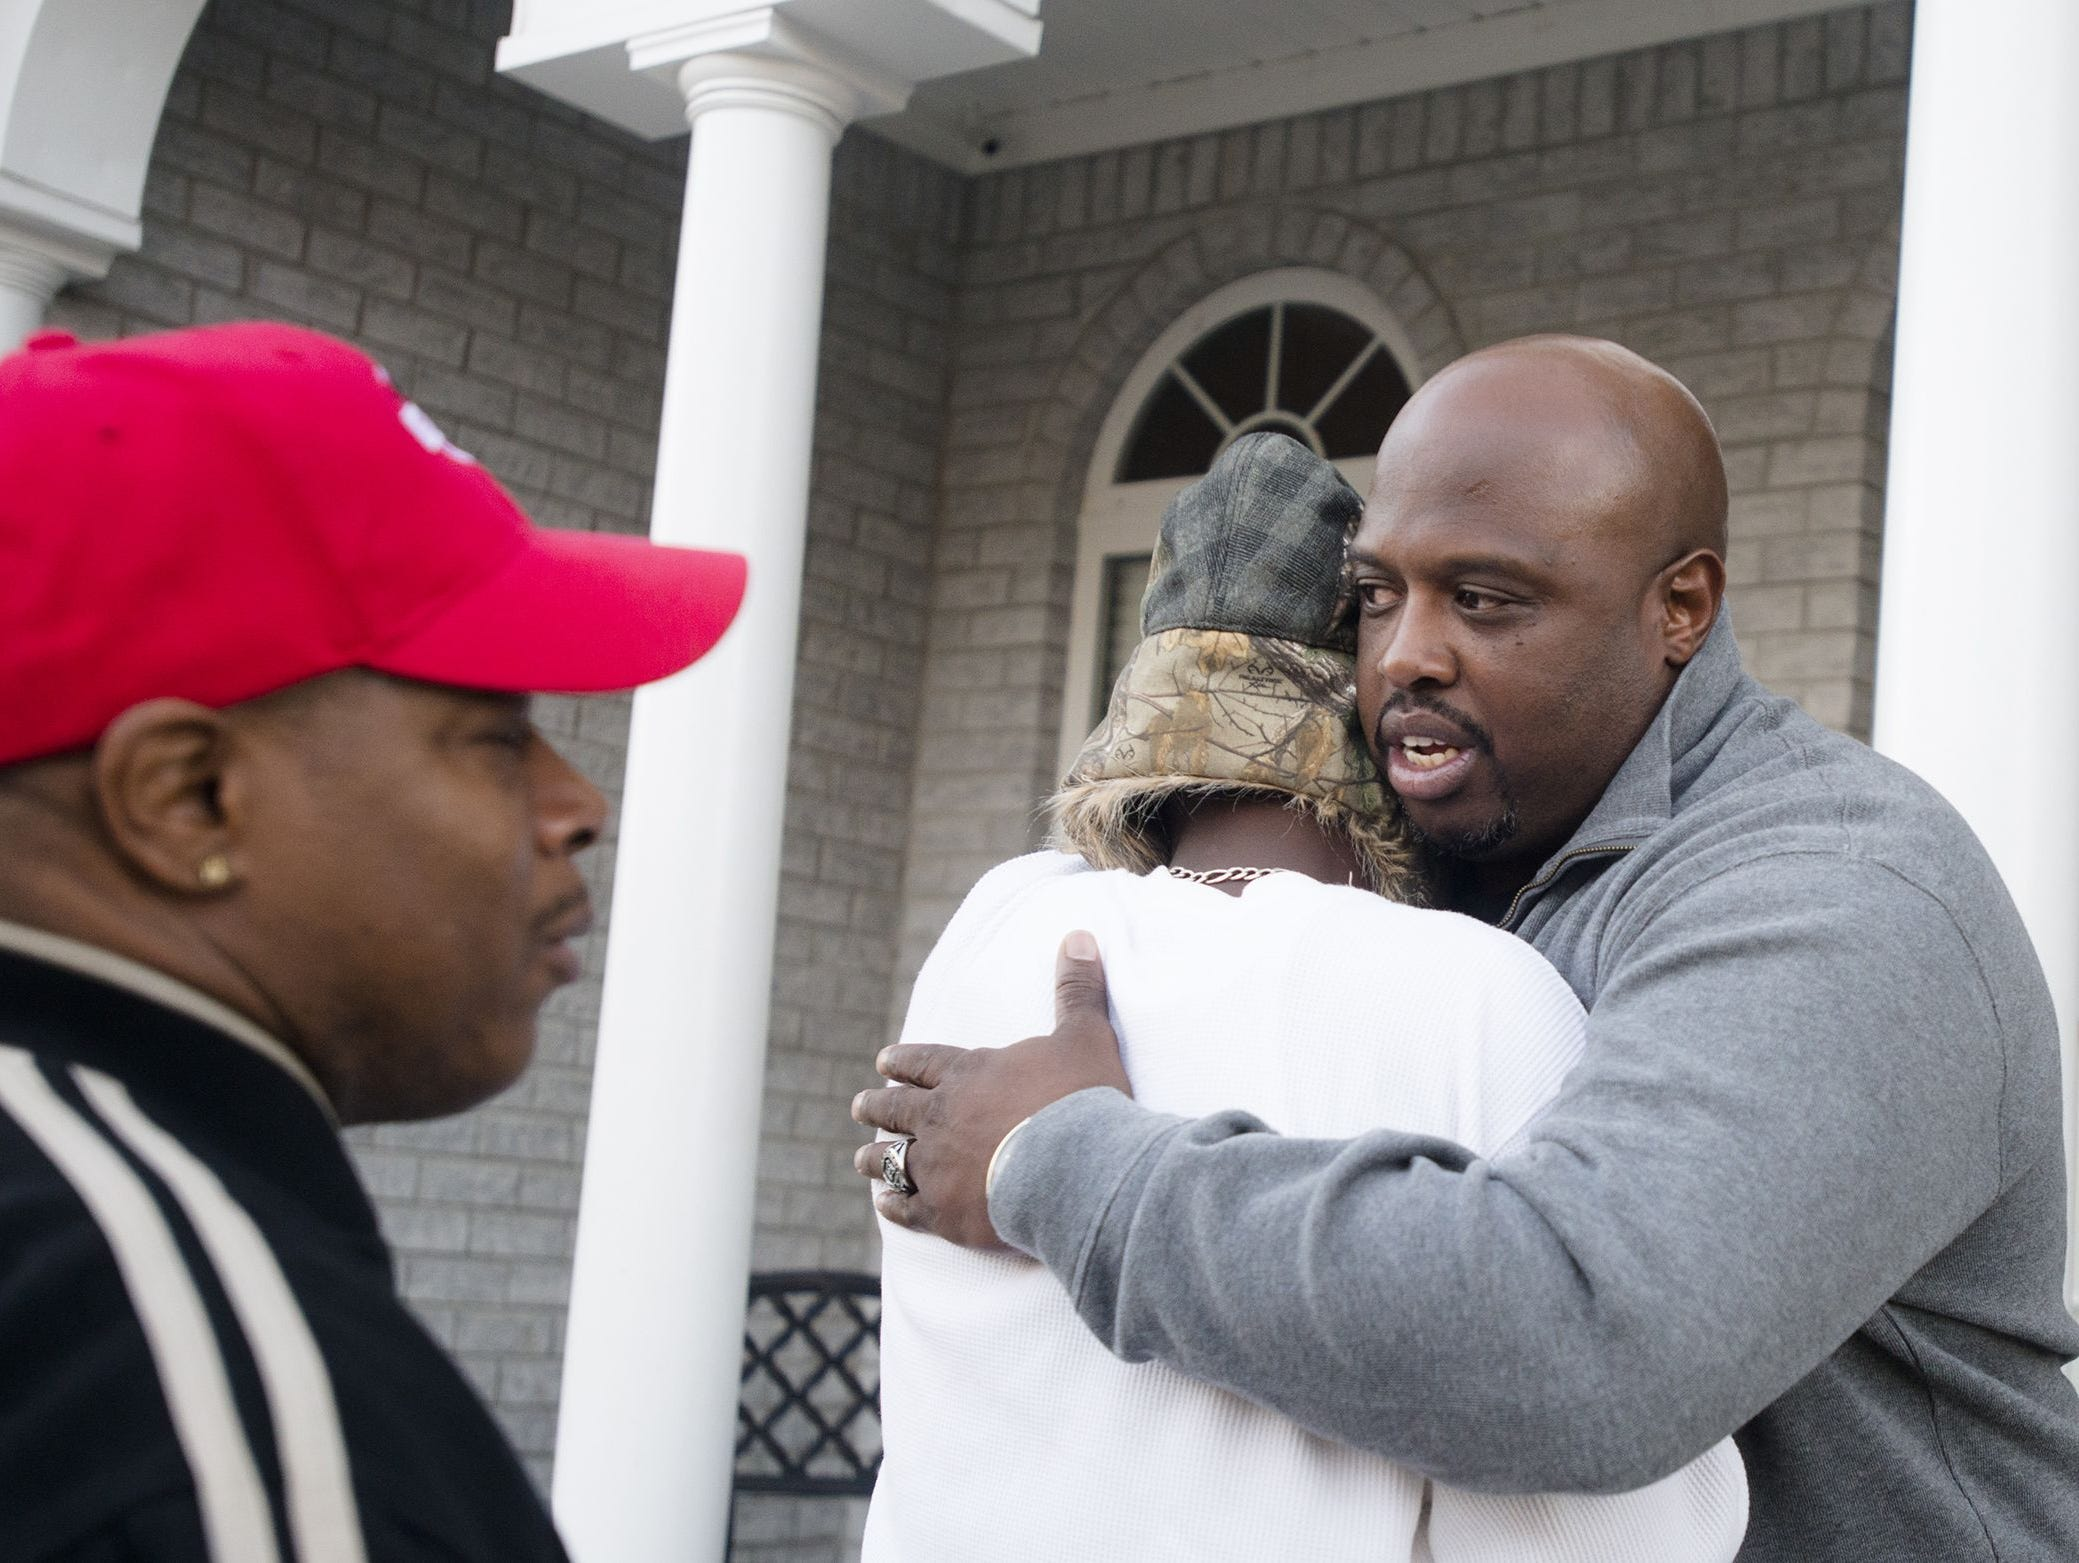 Mario Mitchell, father of Auburn football player Jakell Mitchell, consoles William Jones, a friend of Jakell's outside his home in Opelika on Sunday. Jakell Mitchell, 18, died after being shot early Sunday at an off-campus apartment complex. Mario Mitchell, father of Jakell Mitchell, consoles William Jones, a friend of Jakell's, outside his home in Opelika on Sunday.